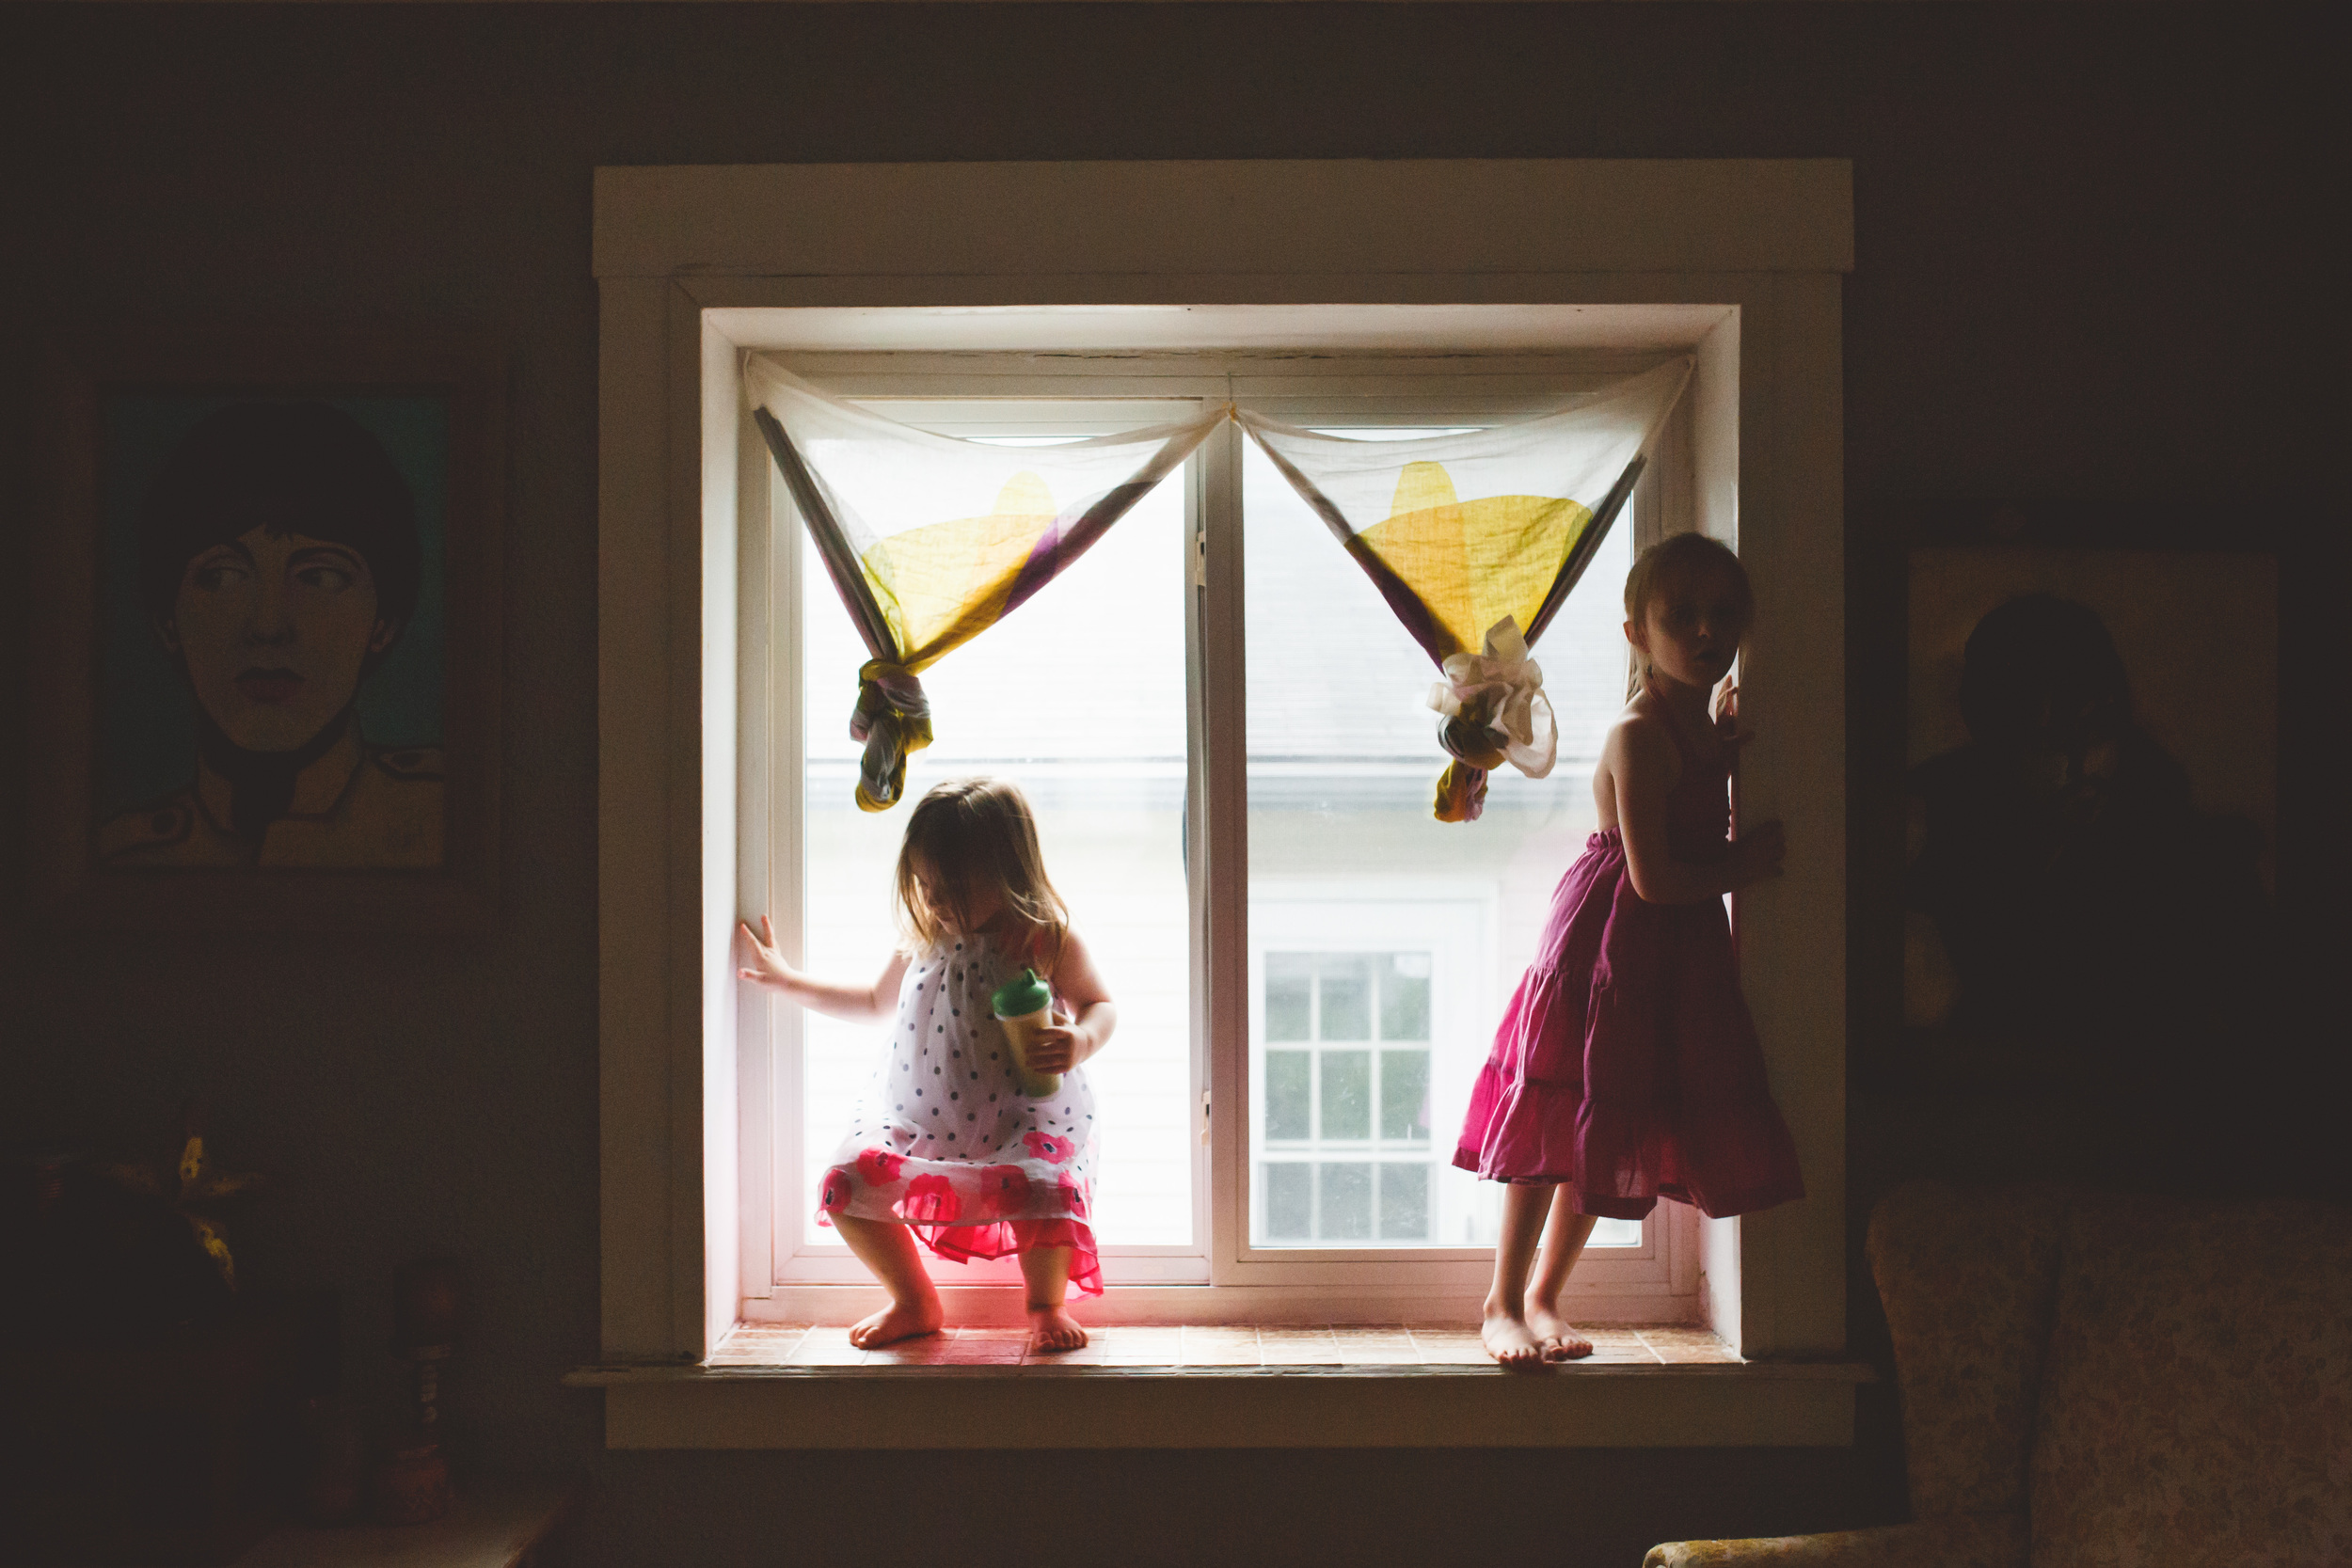 Two girls standing in a window.